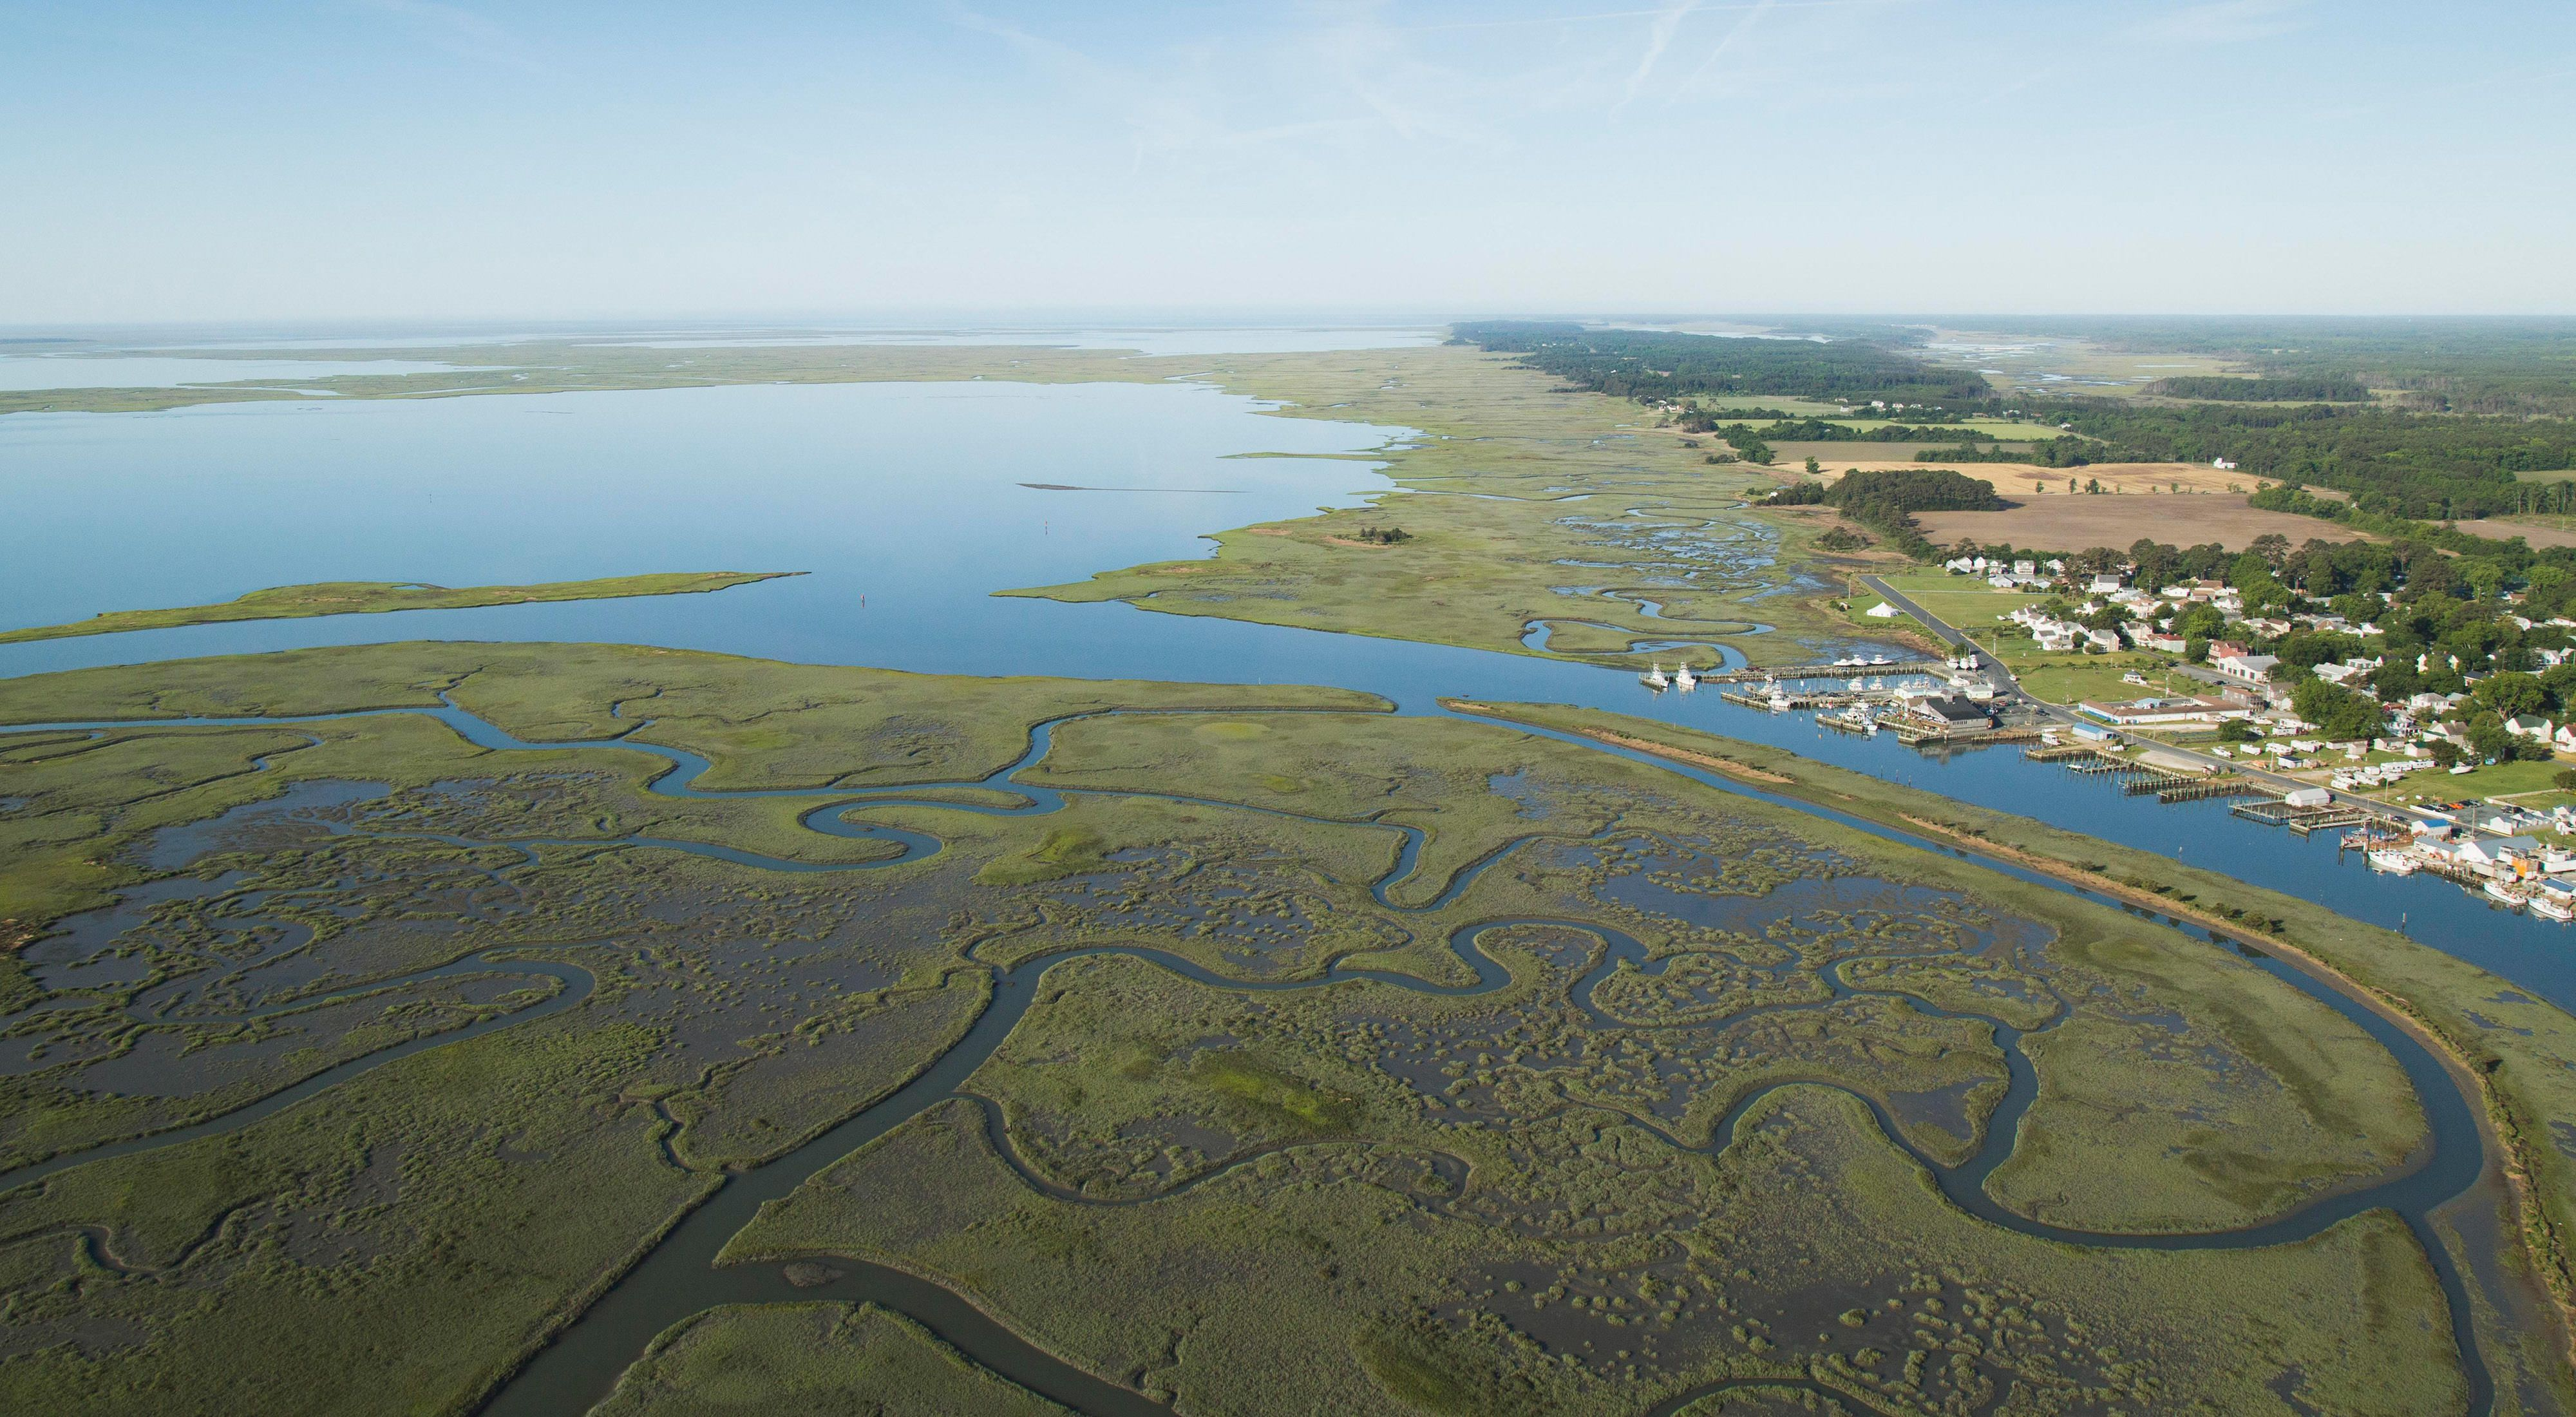 Aerial view of Watchapreague, VA. Meandering channels through coastal marsh, leading to a wider body of water, and a small coastal town with piers and buildings.